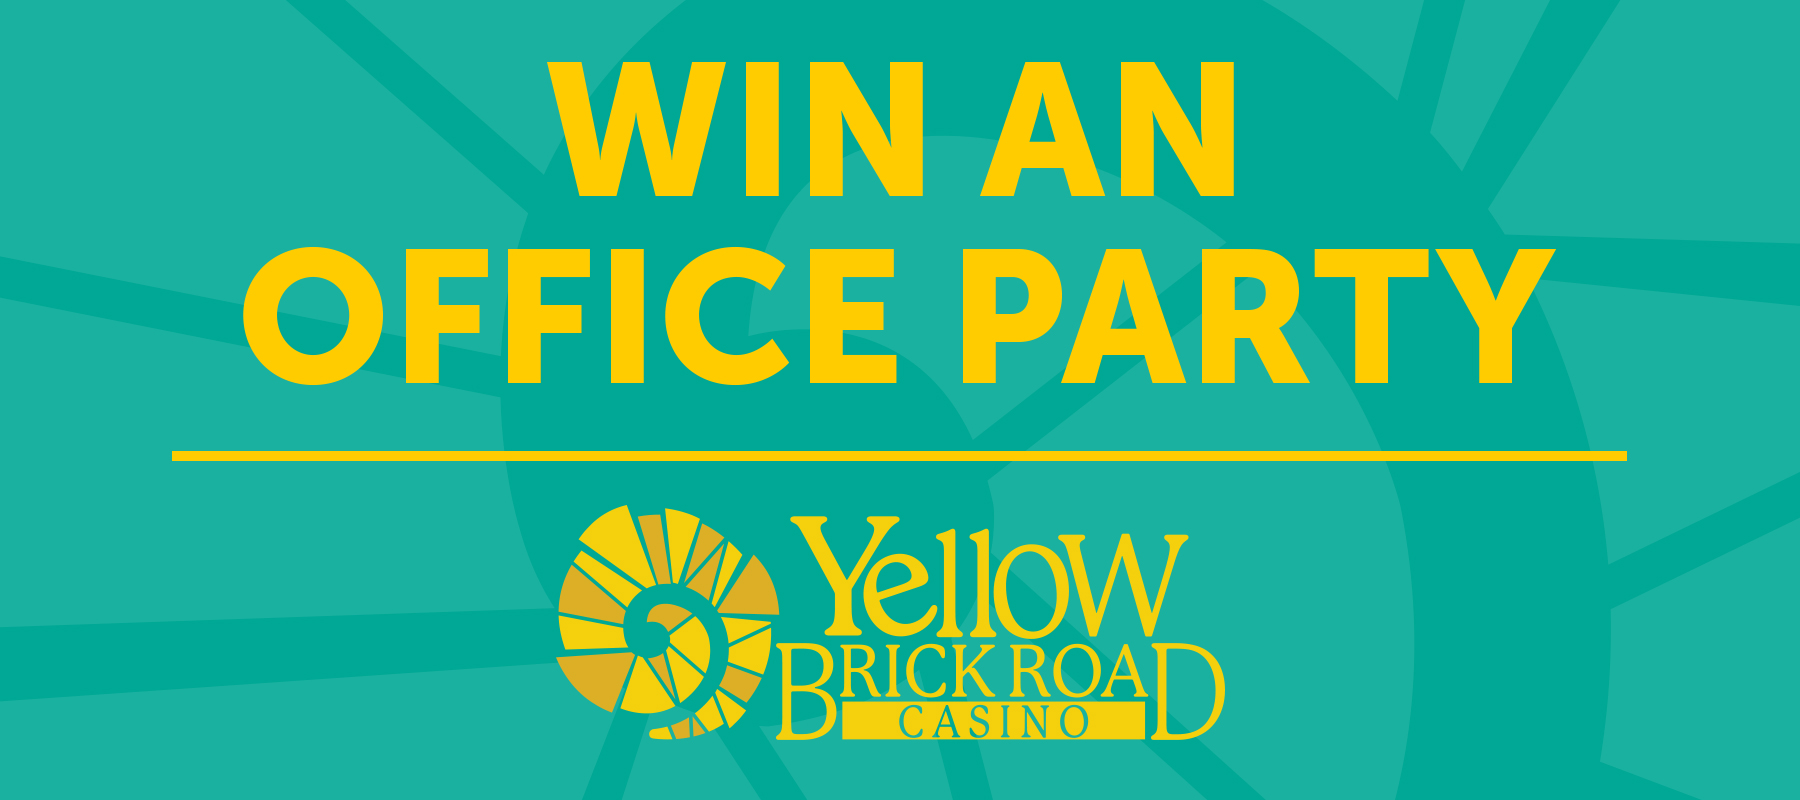 Win an Office Party